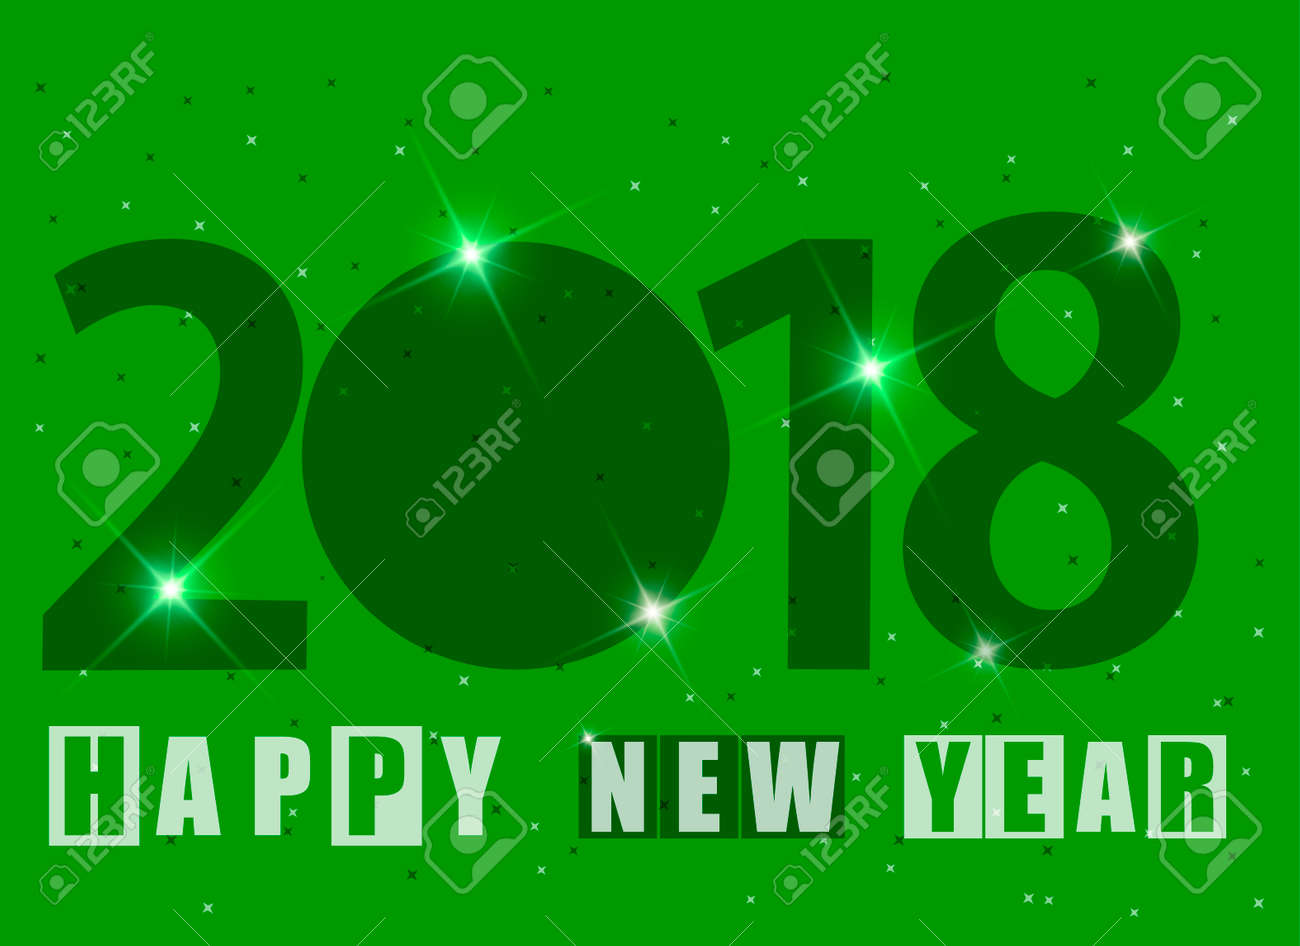 happy new year 2018 greeting card stock vector 90517208